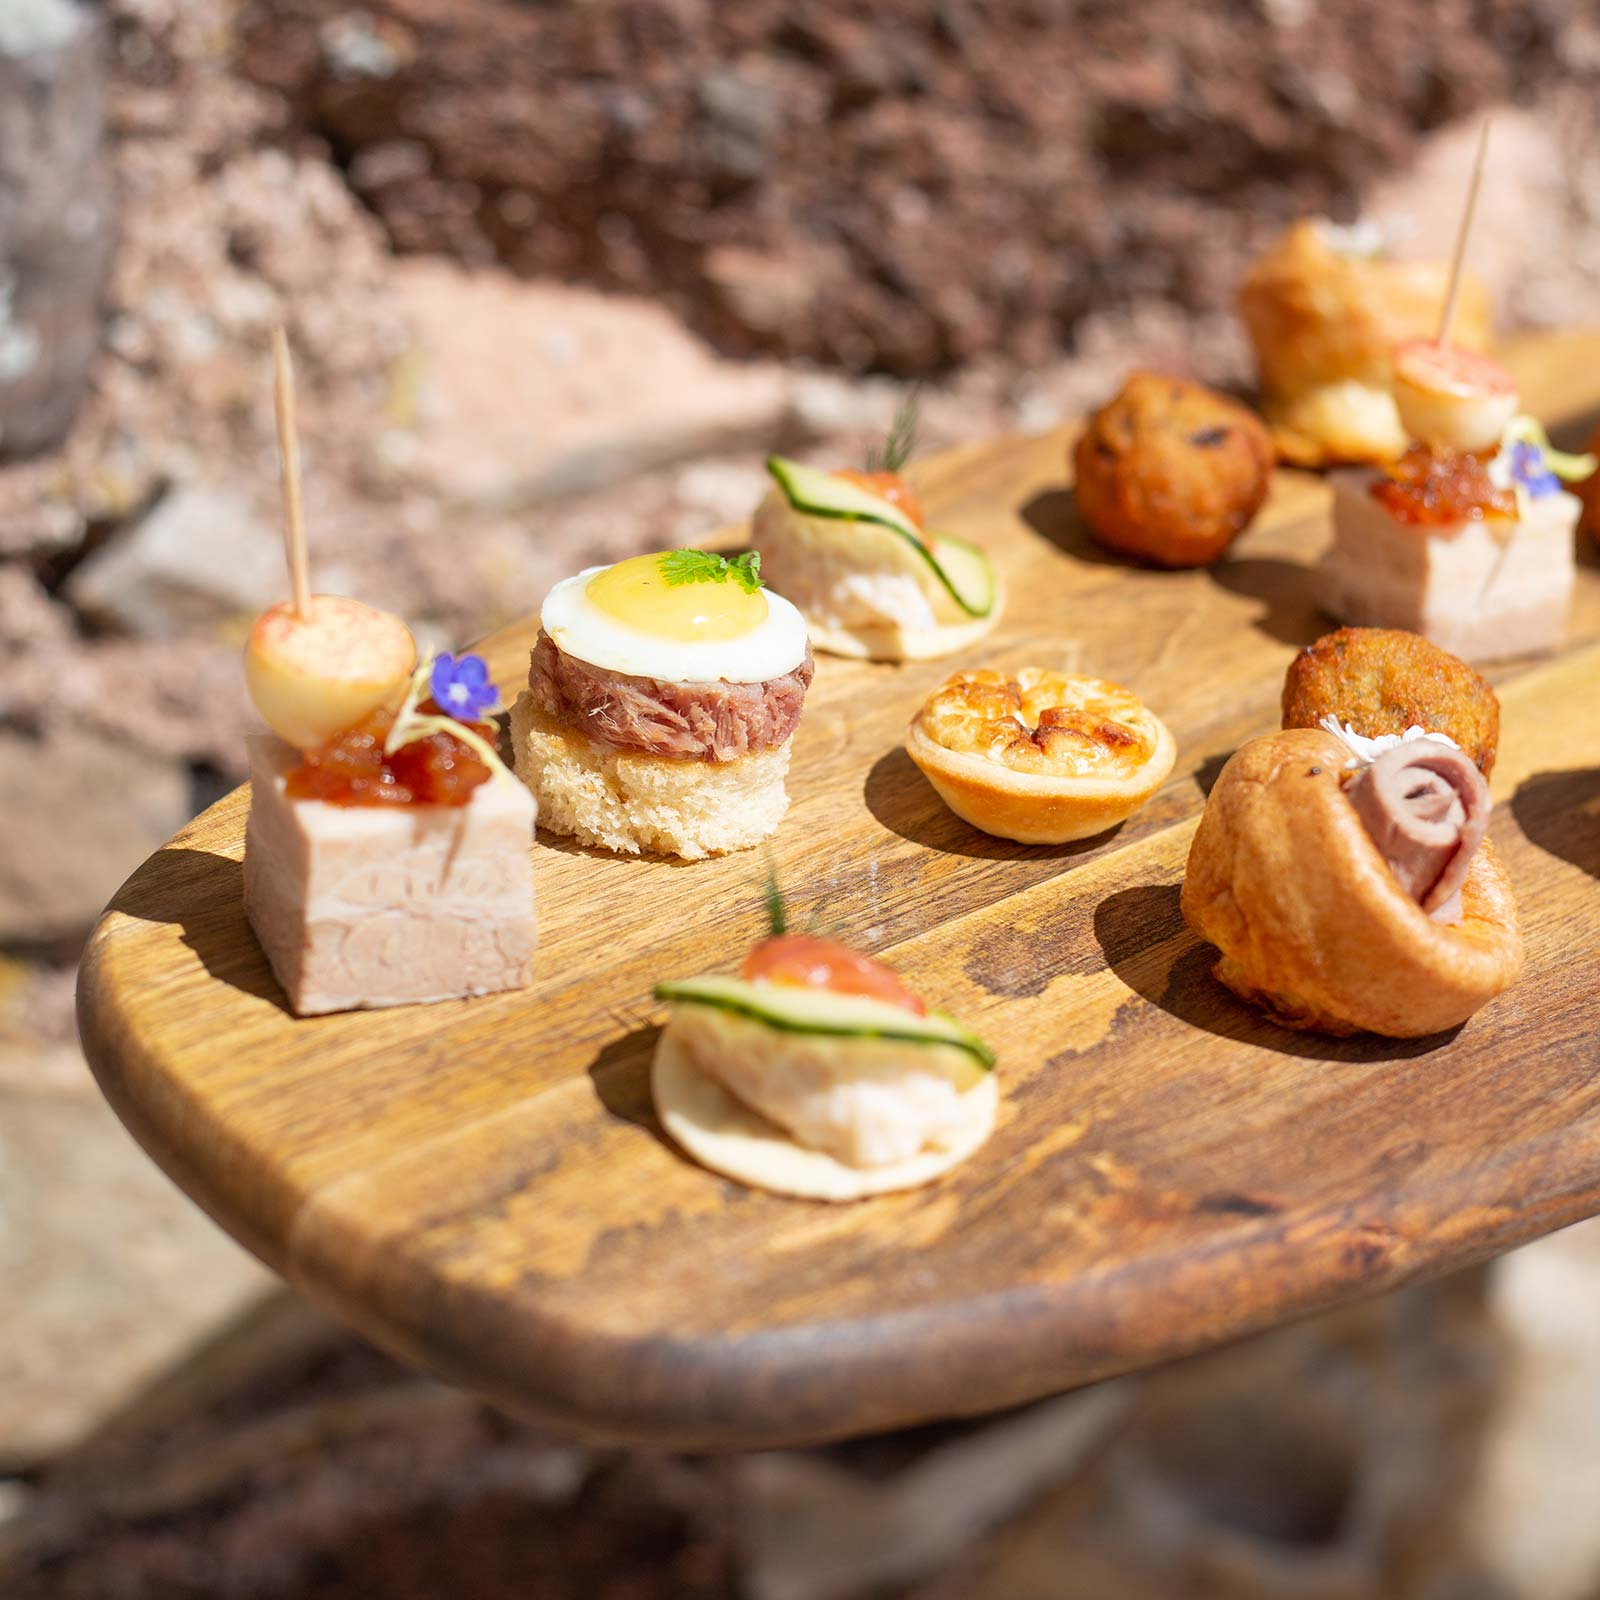 Canapés served on rustic wooden board for intimate wedding at Brickhouse Vineyard.